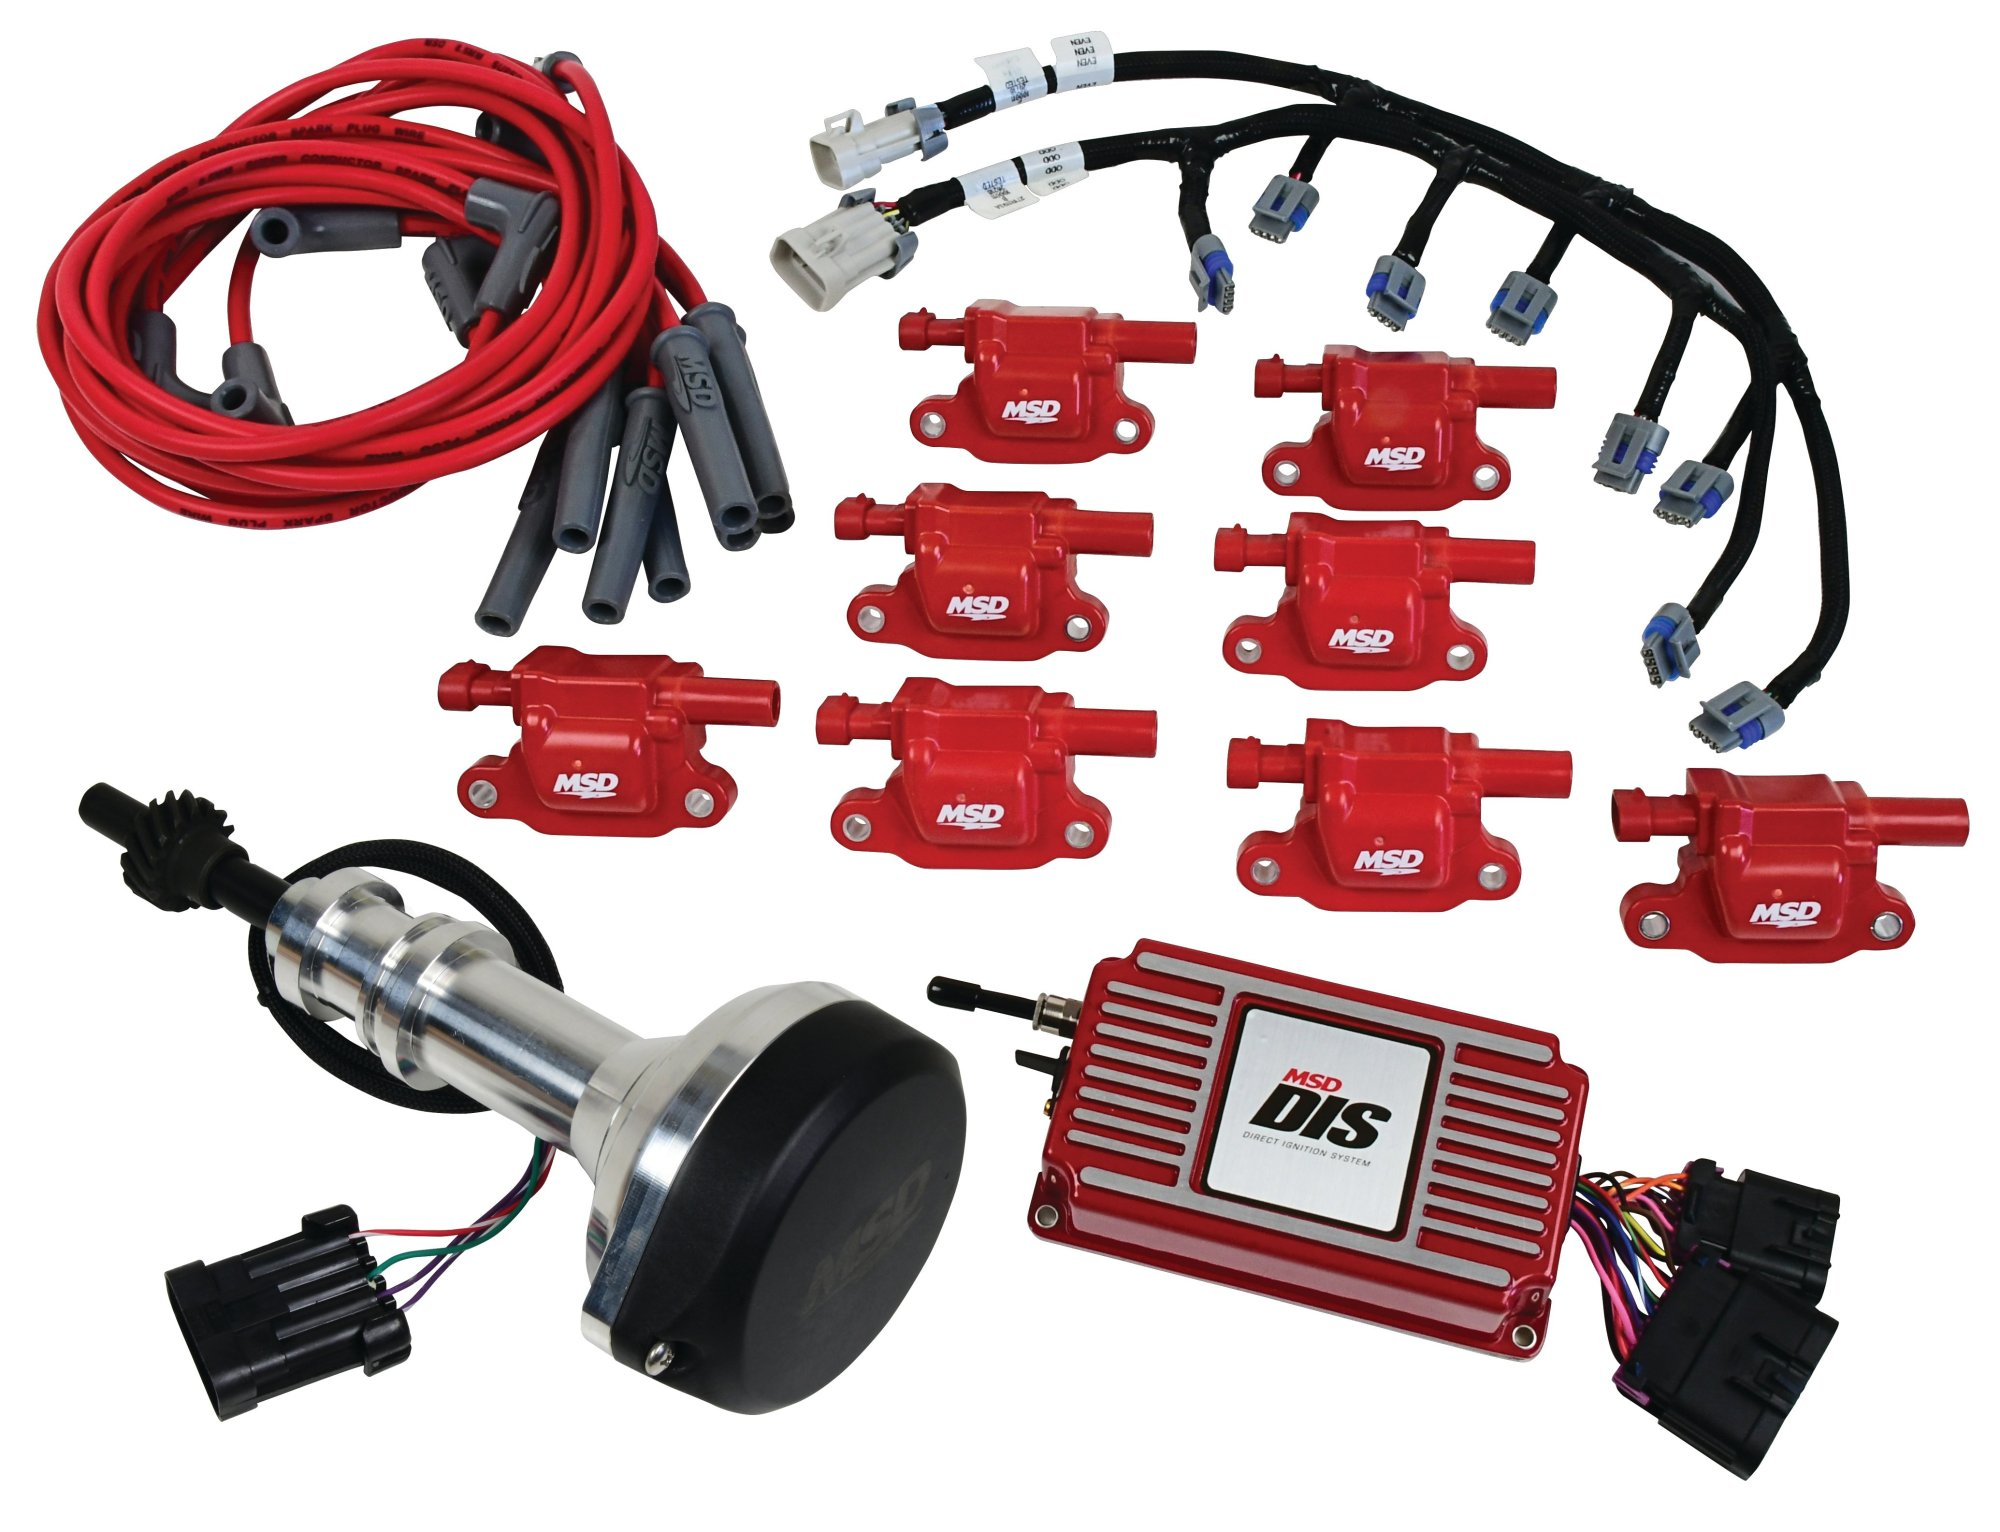 hight resolution of 60153 dis kit small block ford 351w red image